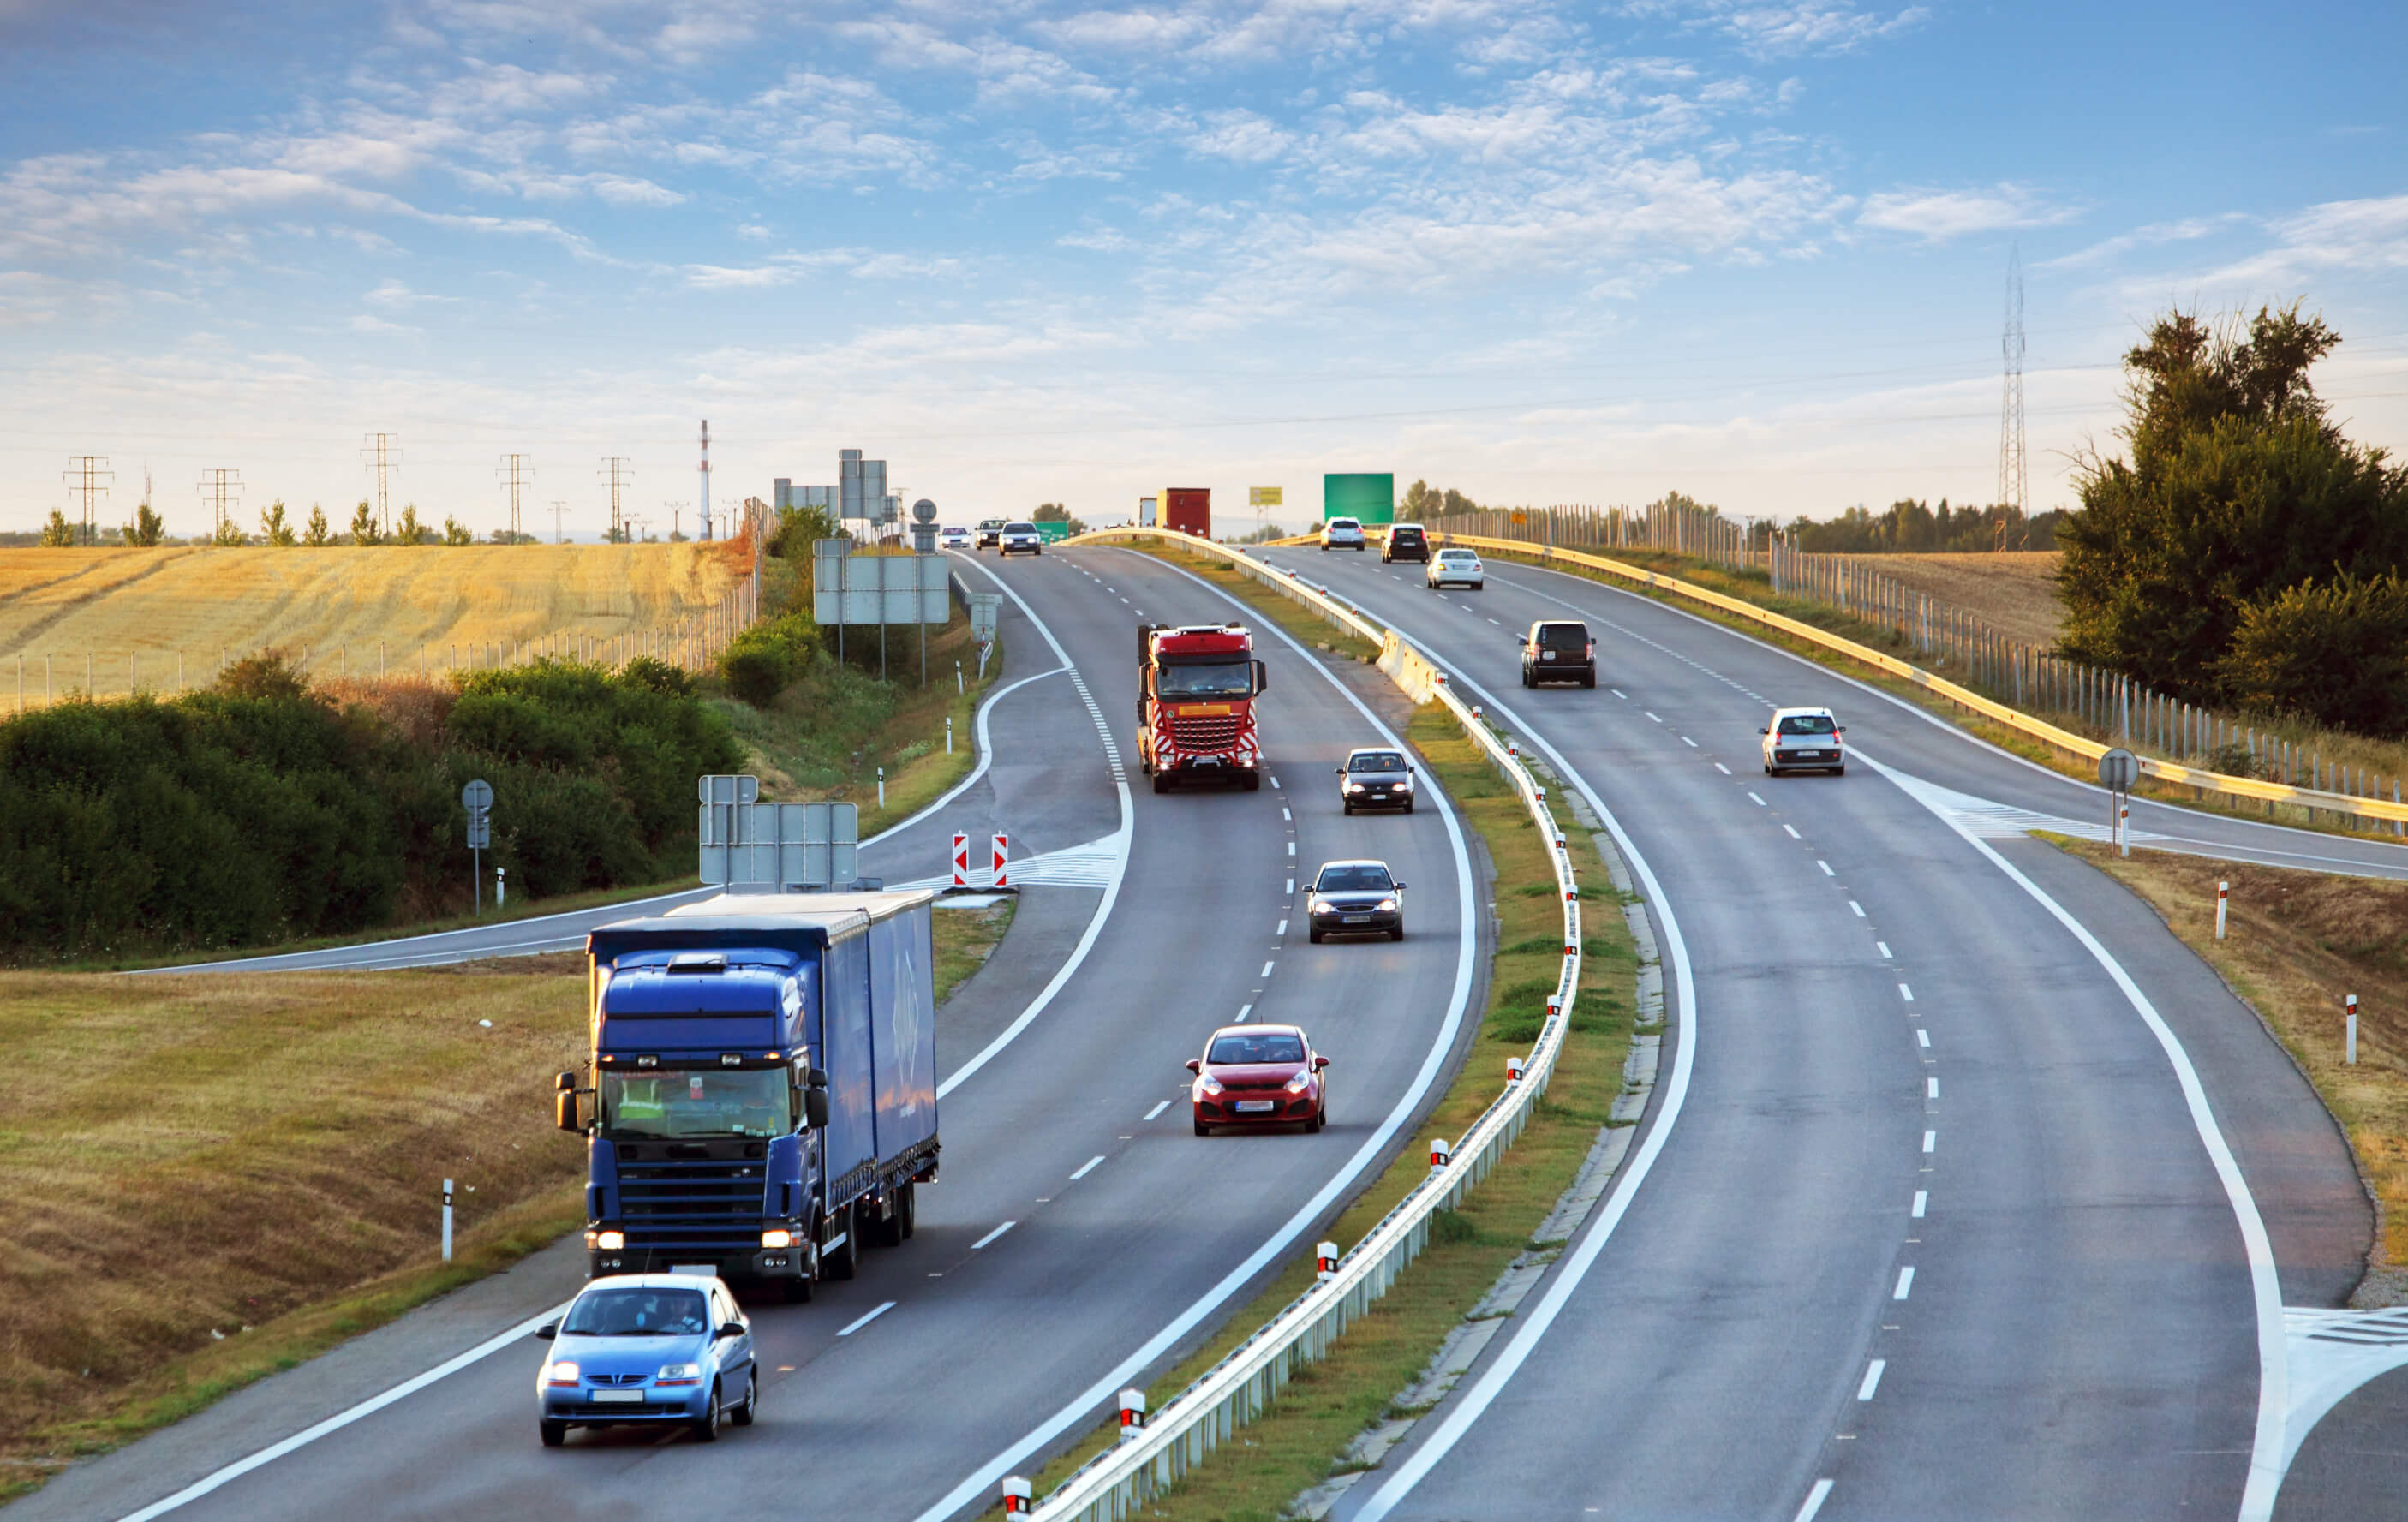 view of car and trucks driving on motorway